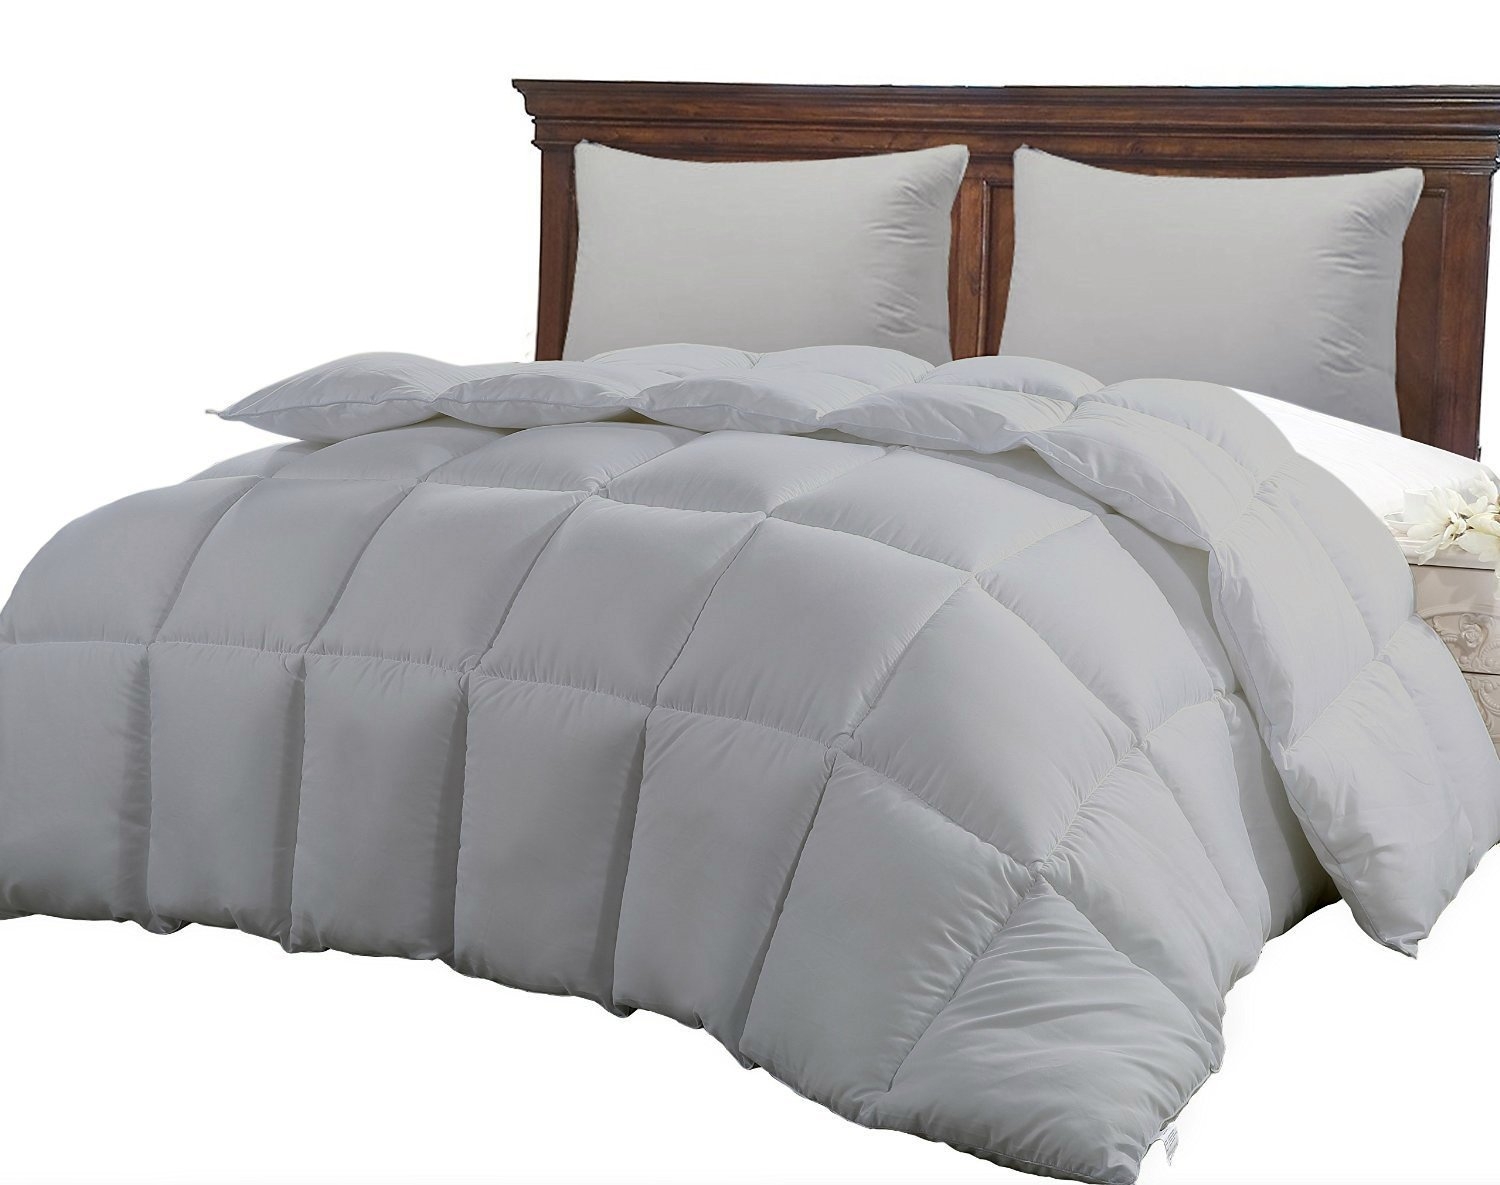 CGK Unlimited King Size Comforter - Solid Squared Duvet Insert Gray - Softer Than Goose Down Alternative Duvets - All Season Comforters